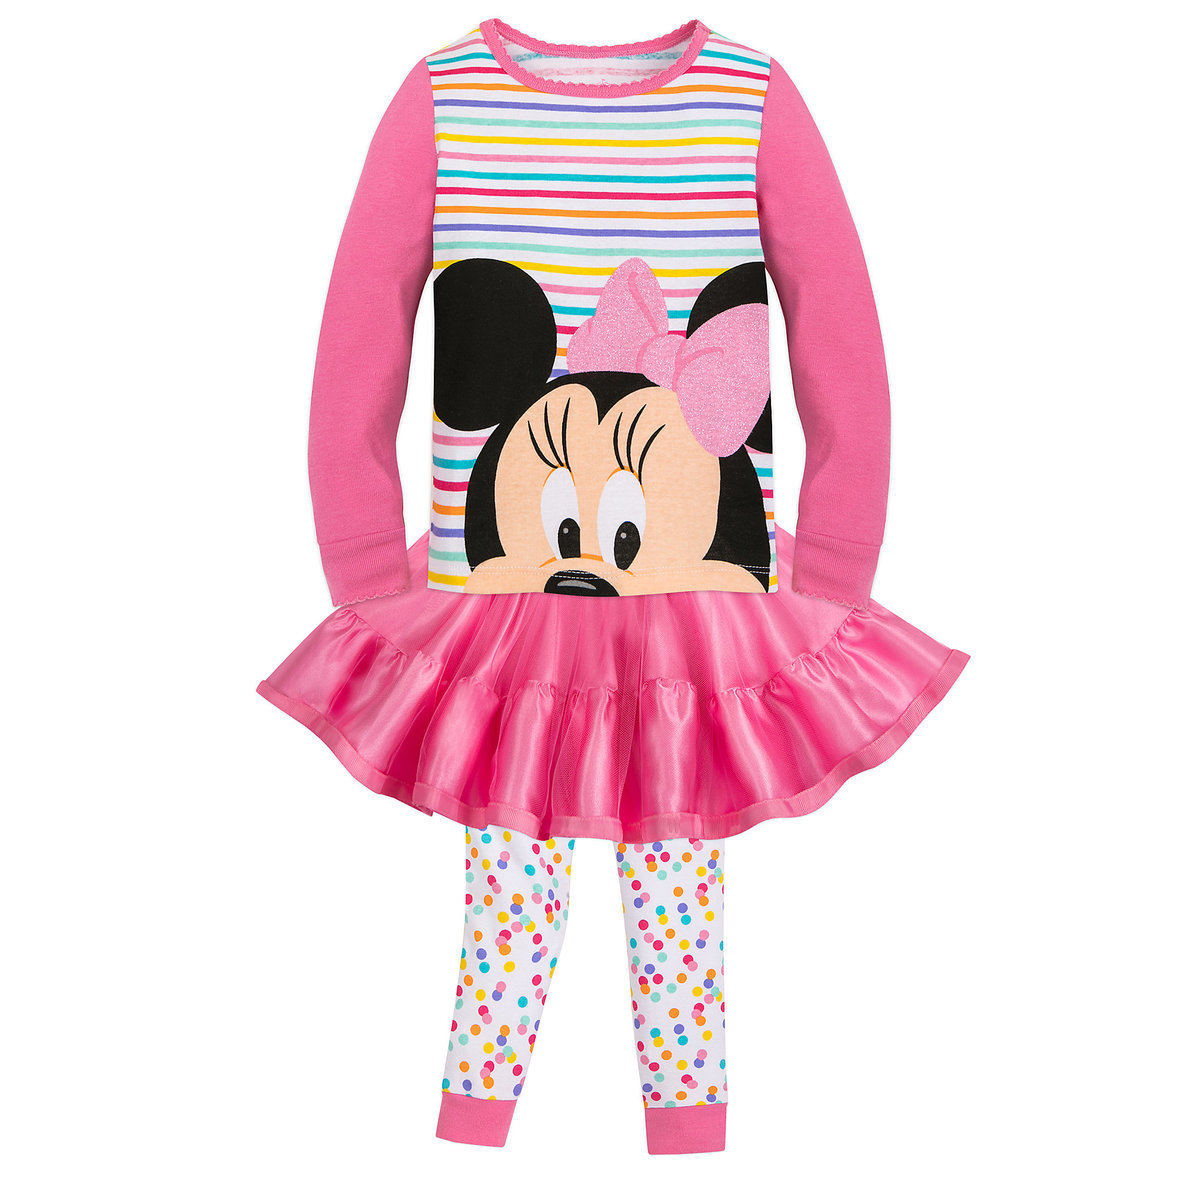 1f3d7152a3 Product Image of Minnie Mouse PJ PALS Set for Girls # 1